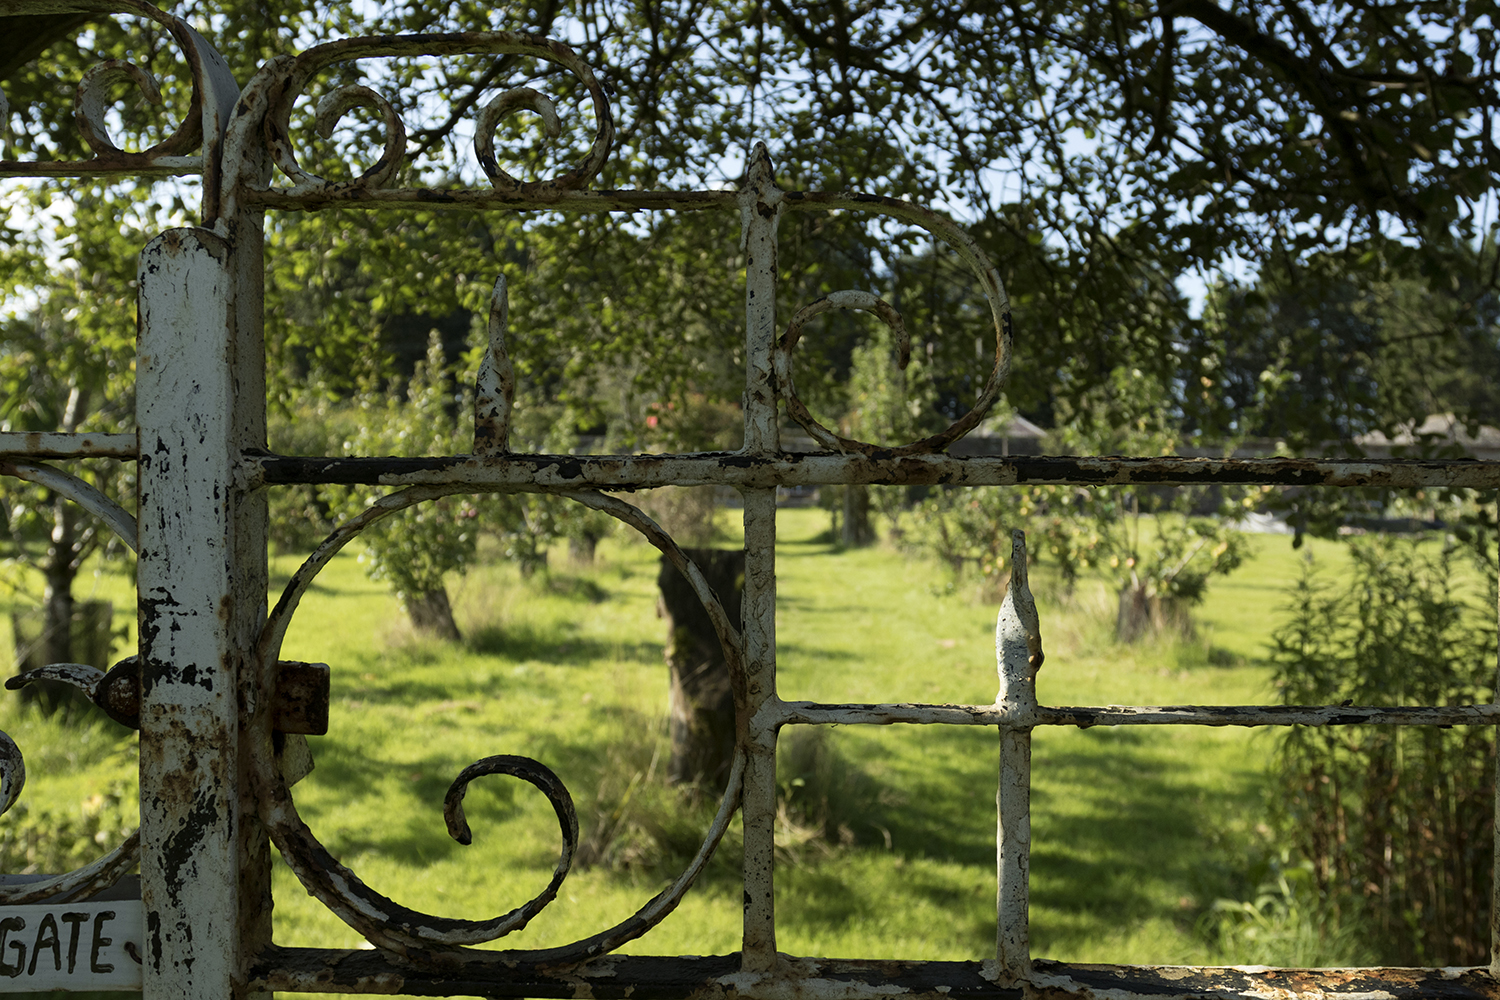 Gate into our Walled Garden